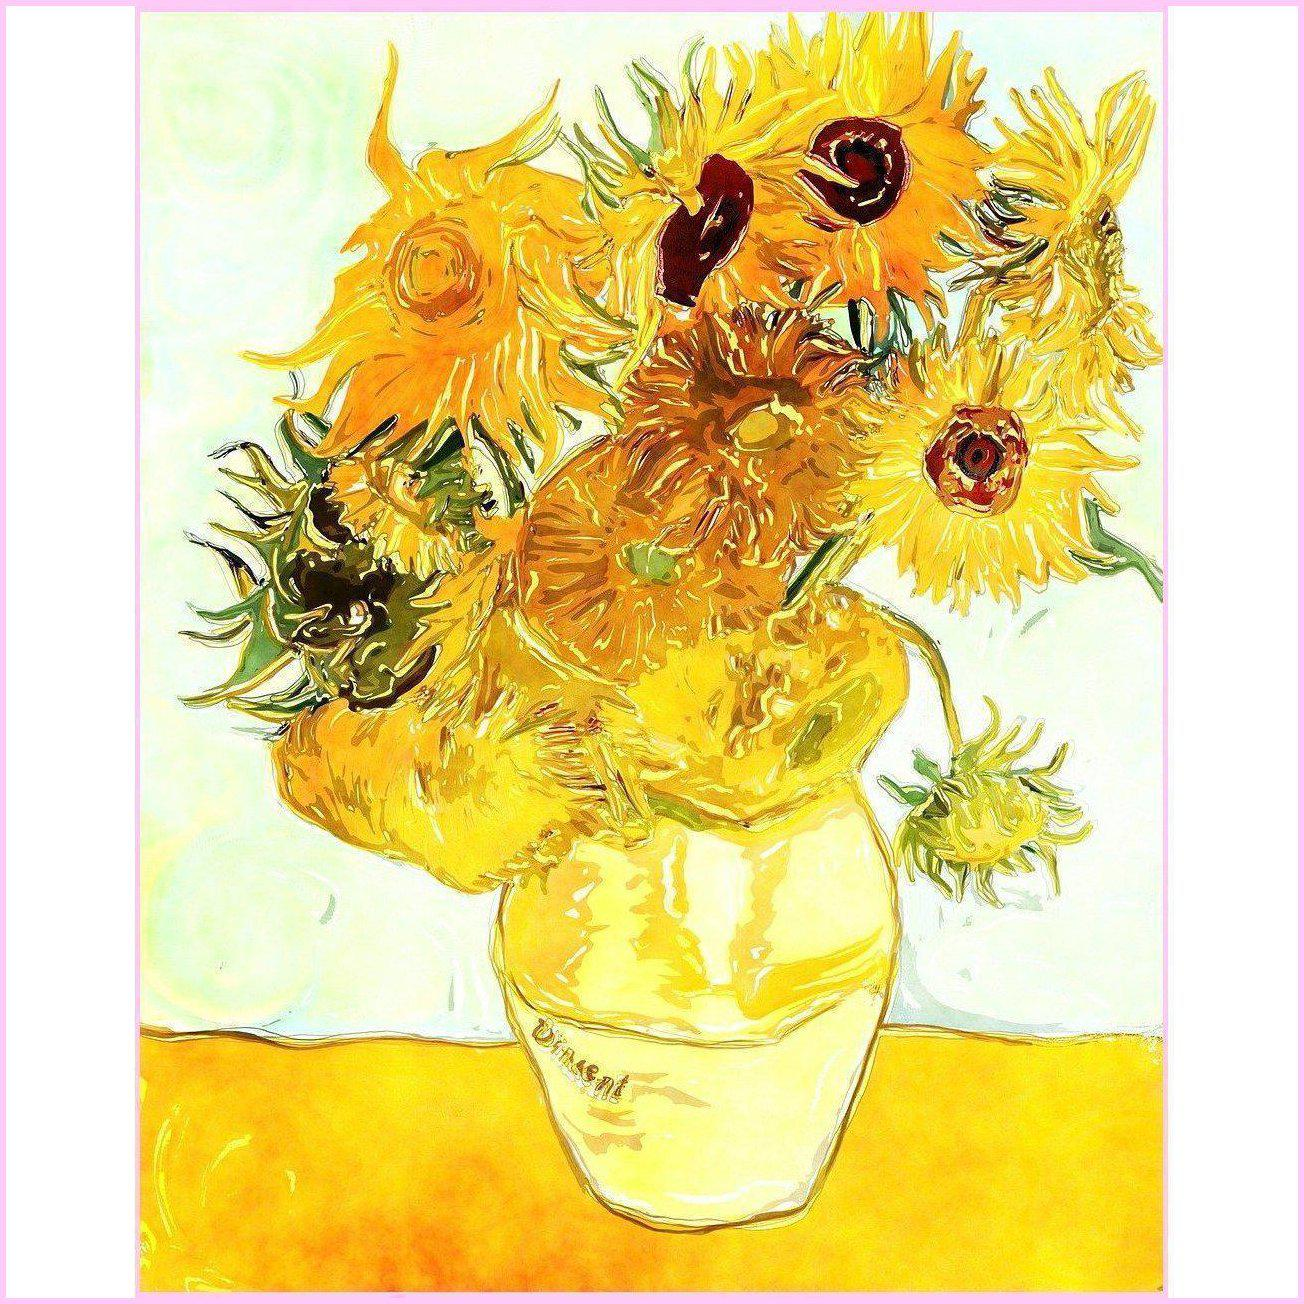 Sunflowers by Van Gogh-Diamond Painting Kit-30x40cm (12x16 in)-Square-Heartful Diamonds